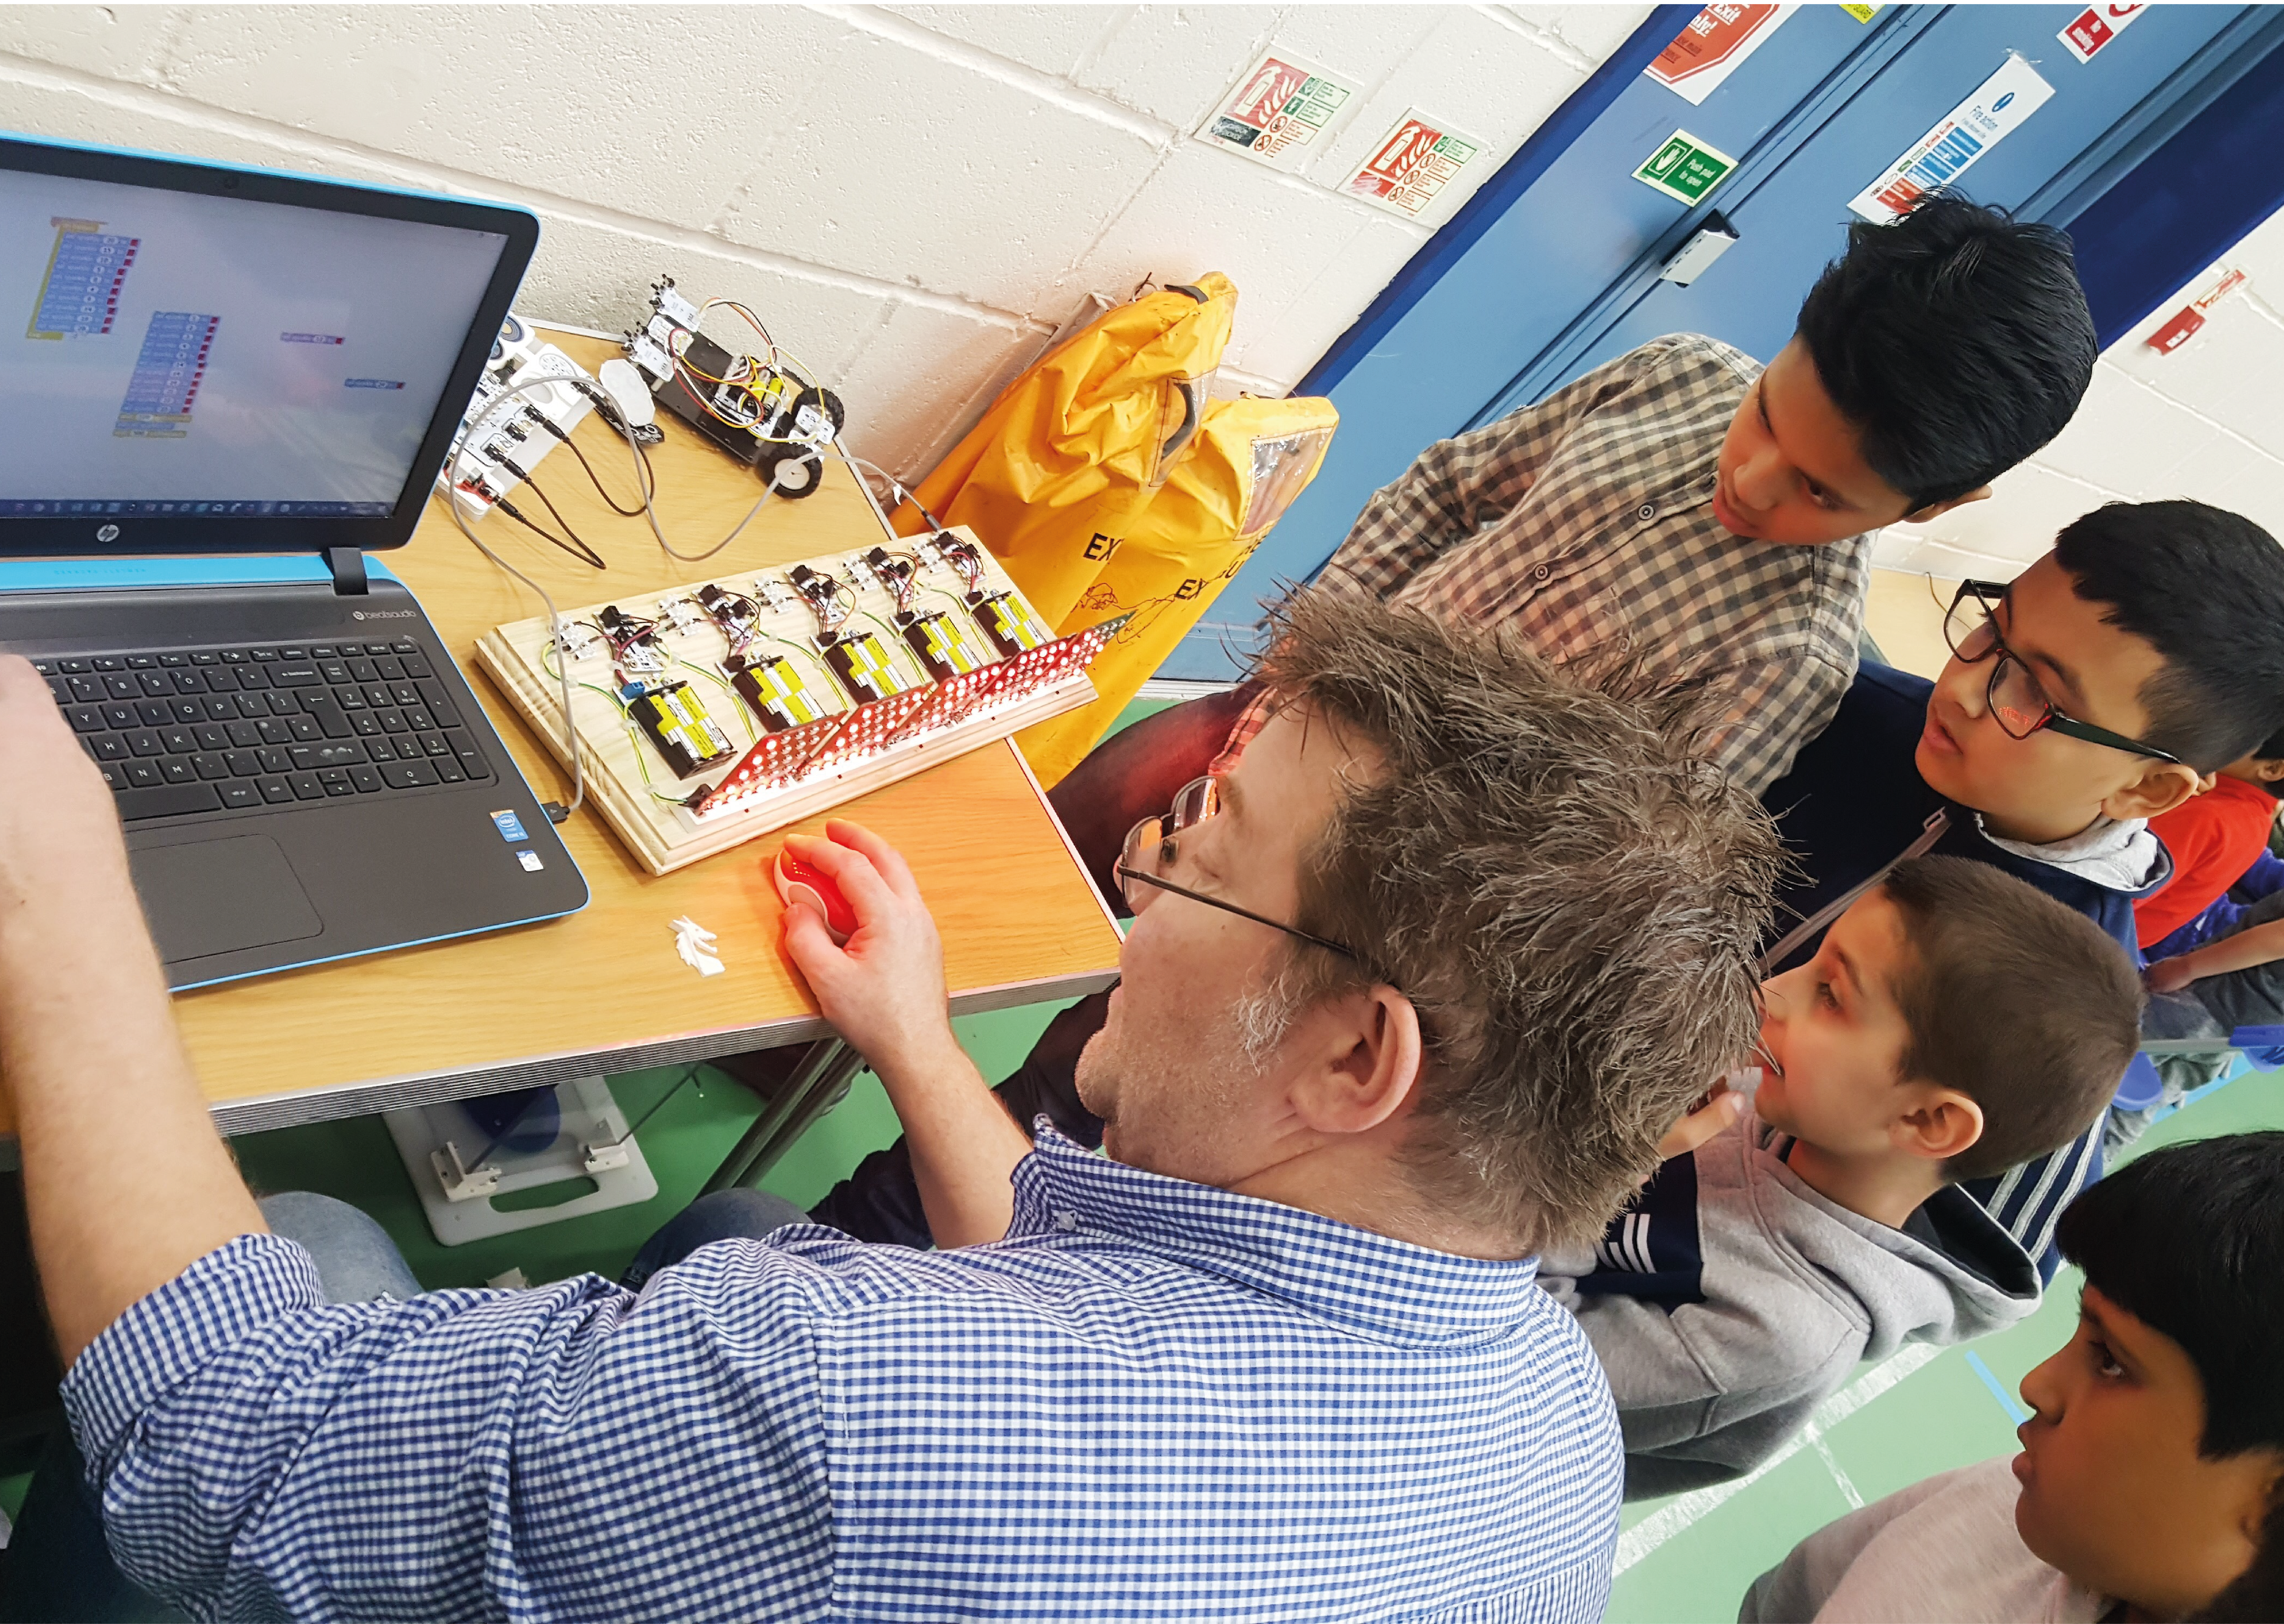 Image of Chris Love from Tech4Primary at a previouse Mad Science Club session showign kids how to code